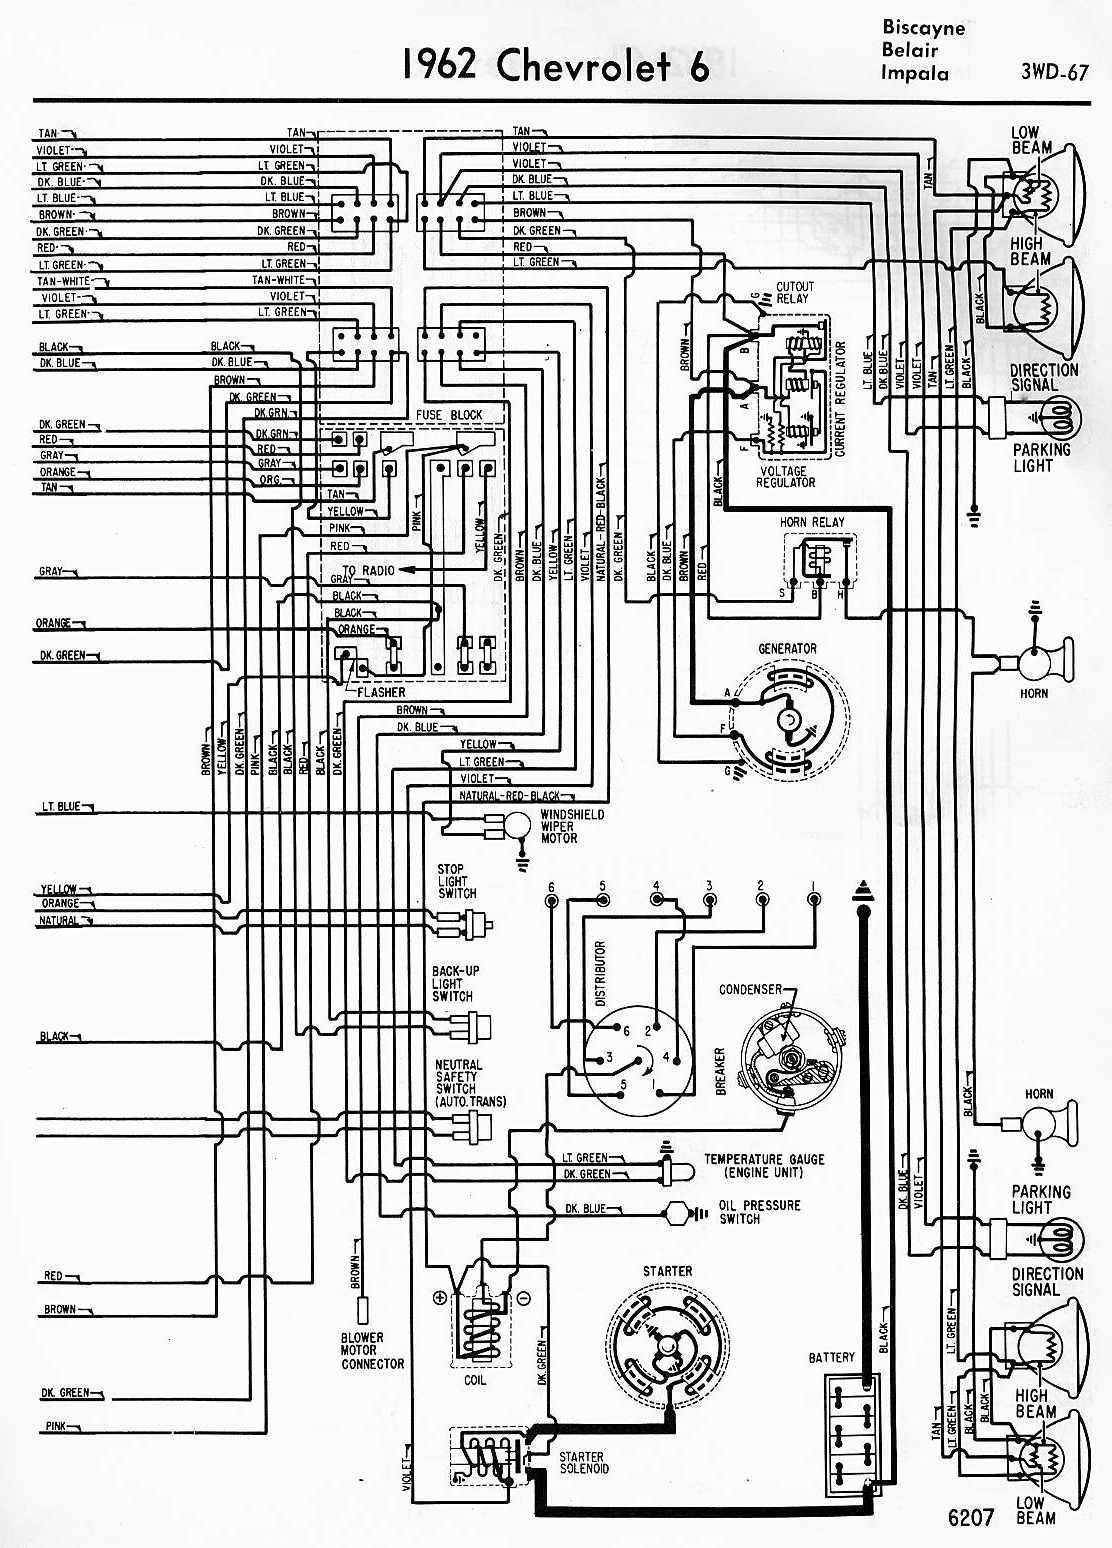 1962 Chevy Truck Wiring Diagram 31 Images 1953 Ford Pdf Electrical Of Chevrolet 6 All About